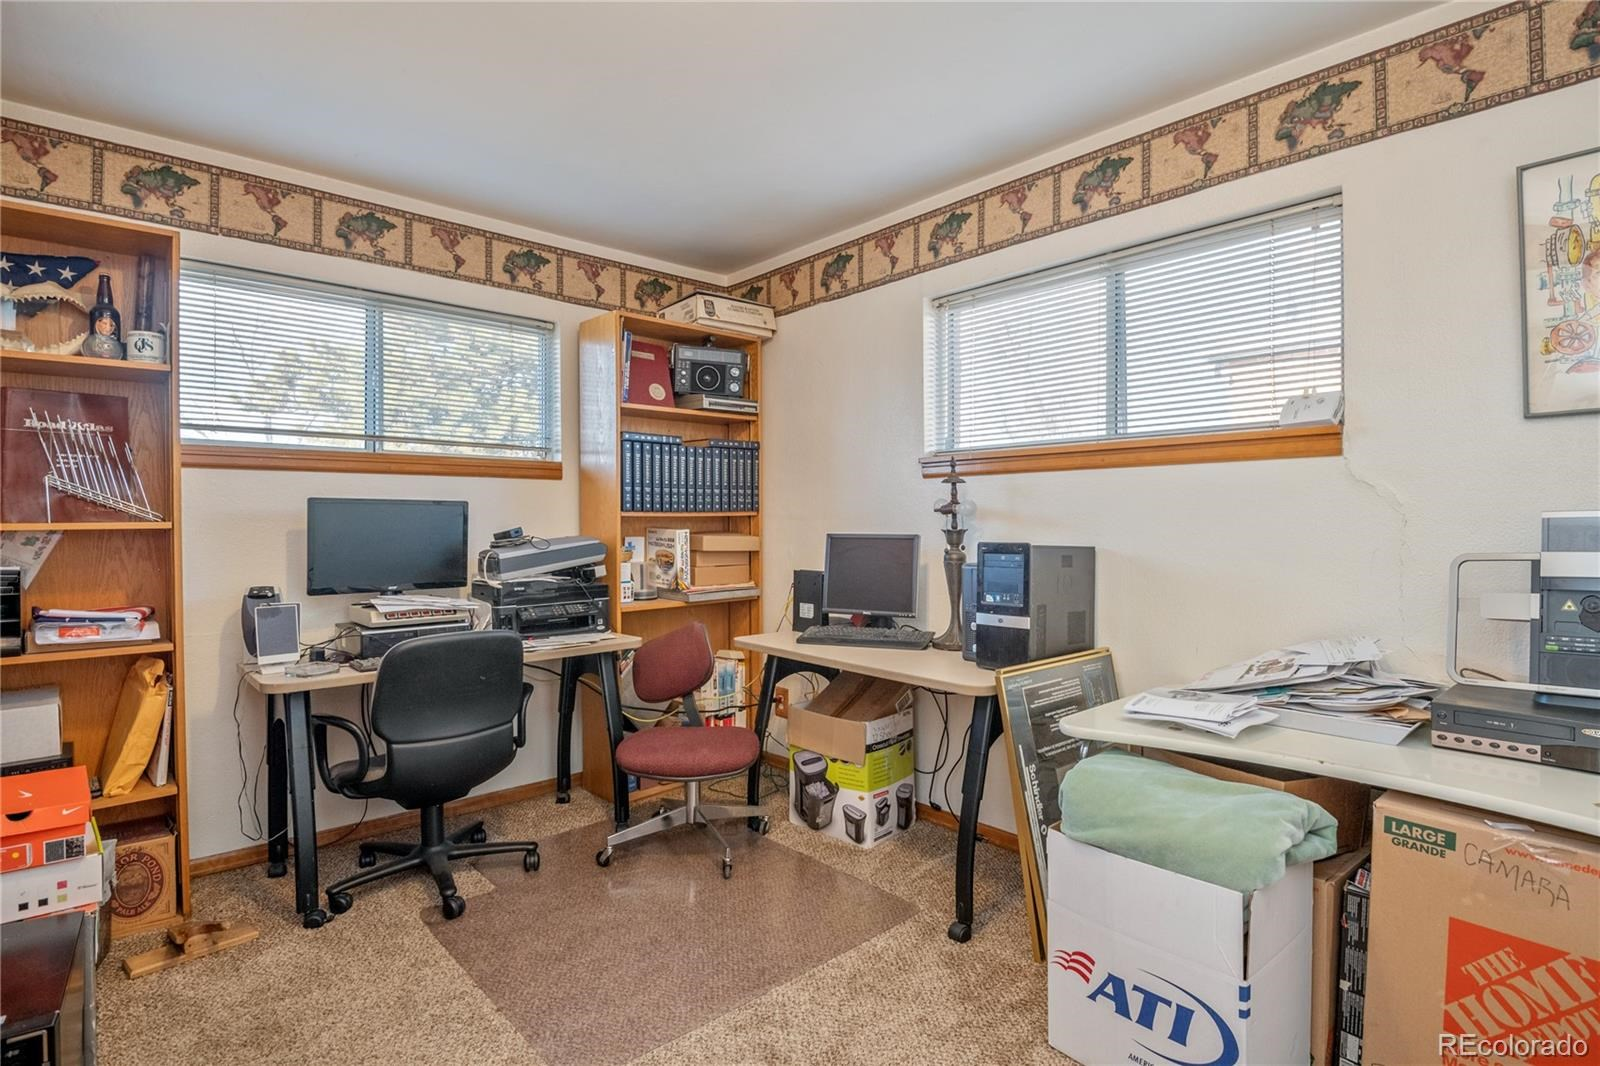 MLS# 4674292 - 10 - 8980 Hickory Place, Thornton, CO 80229